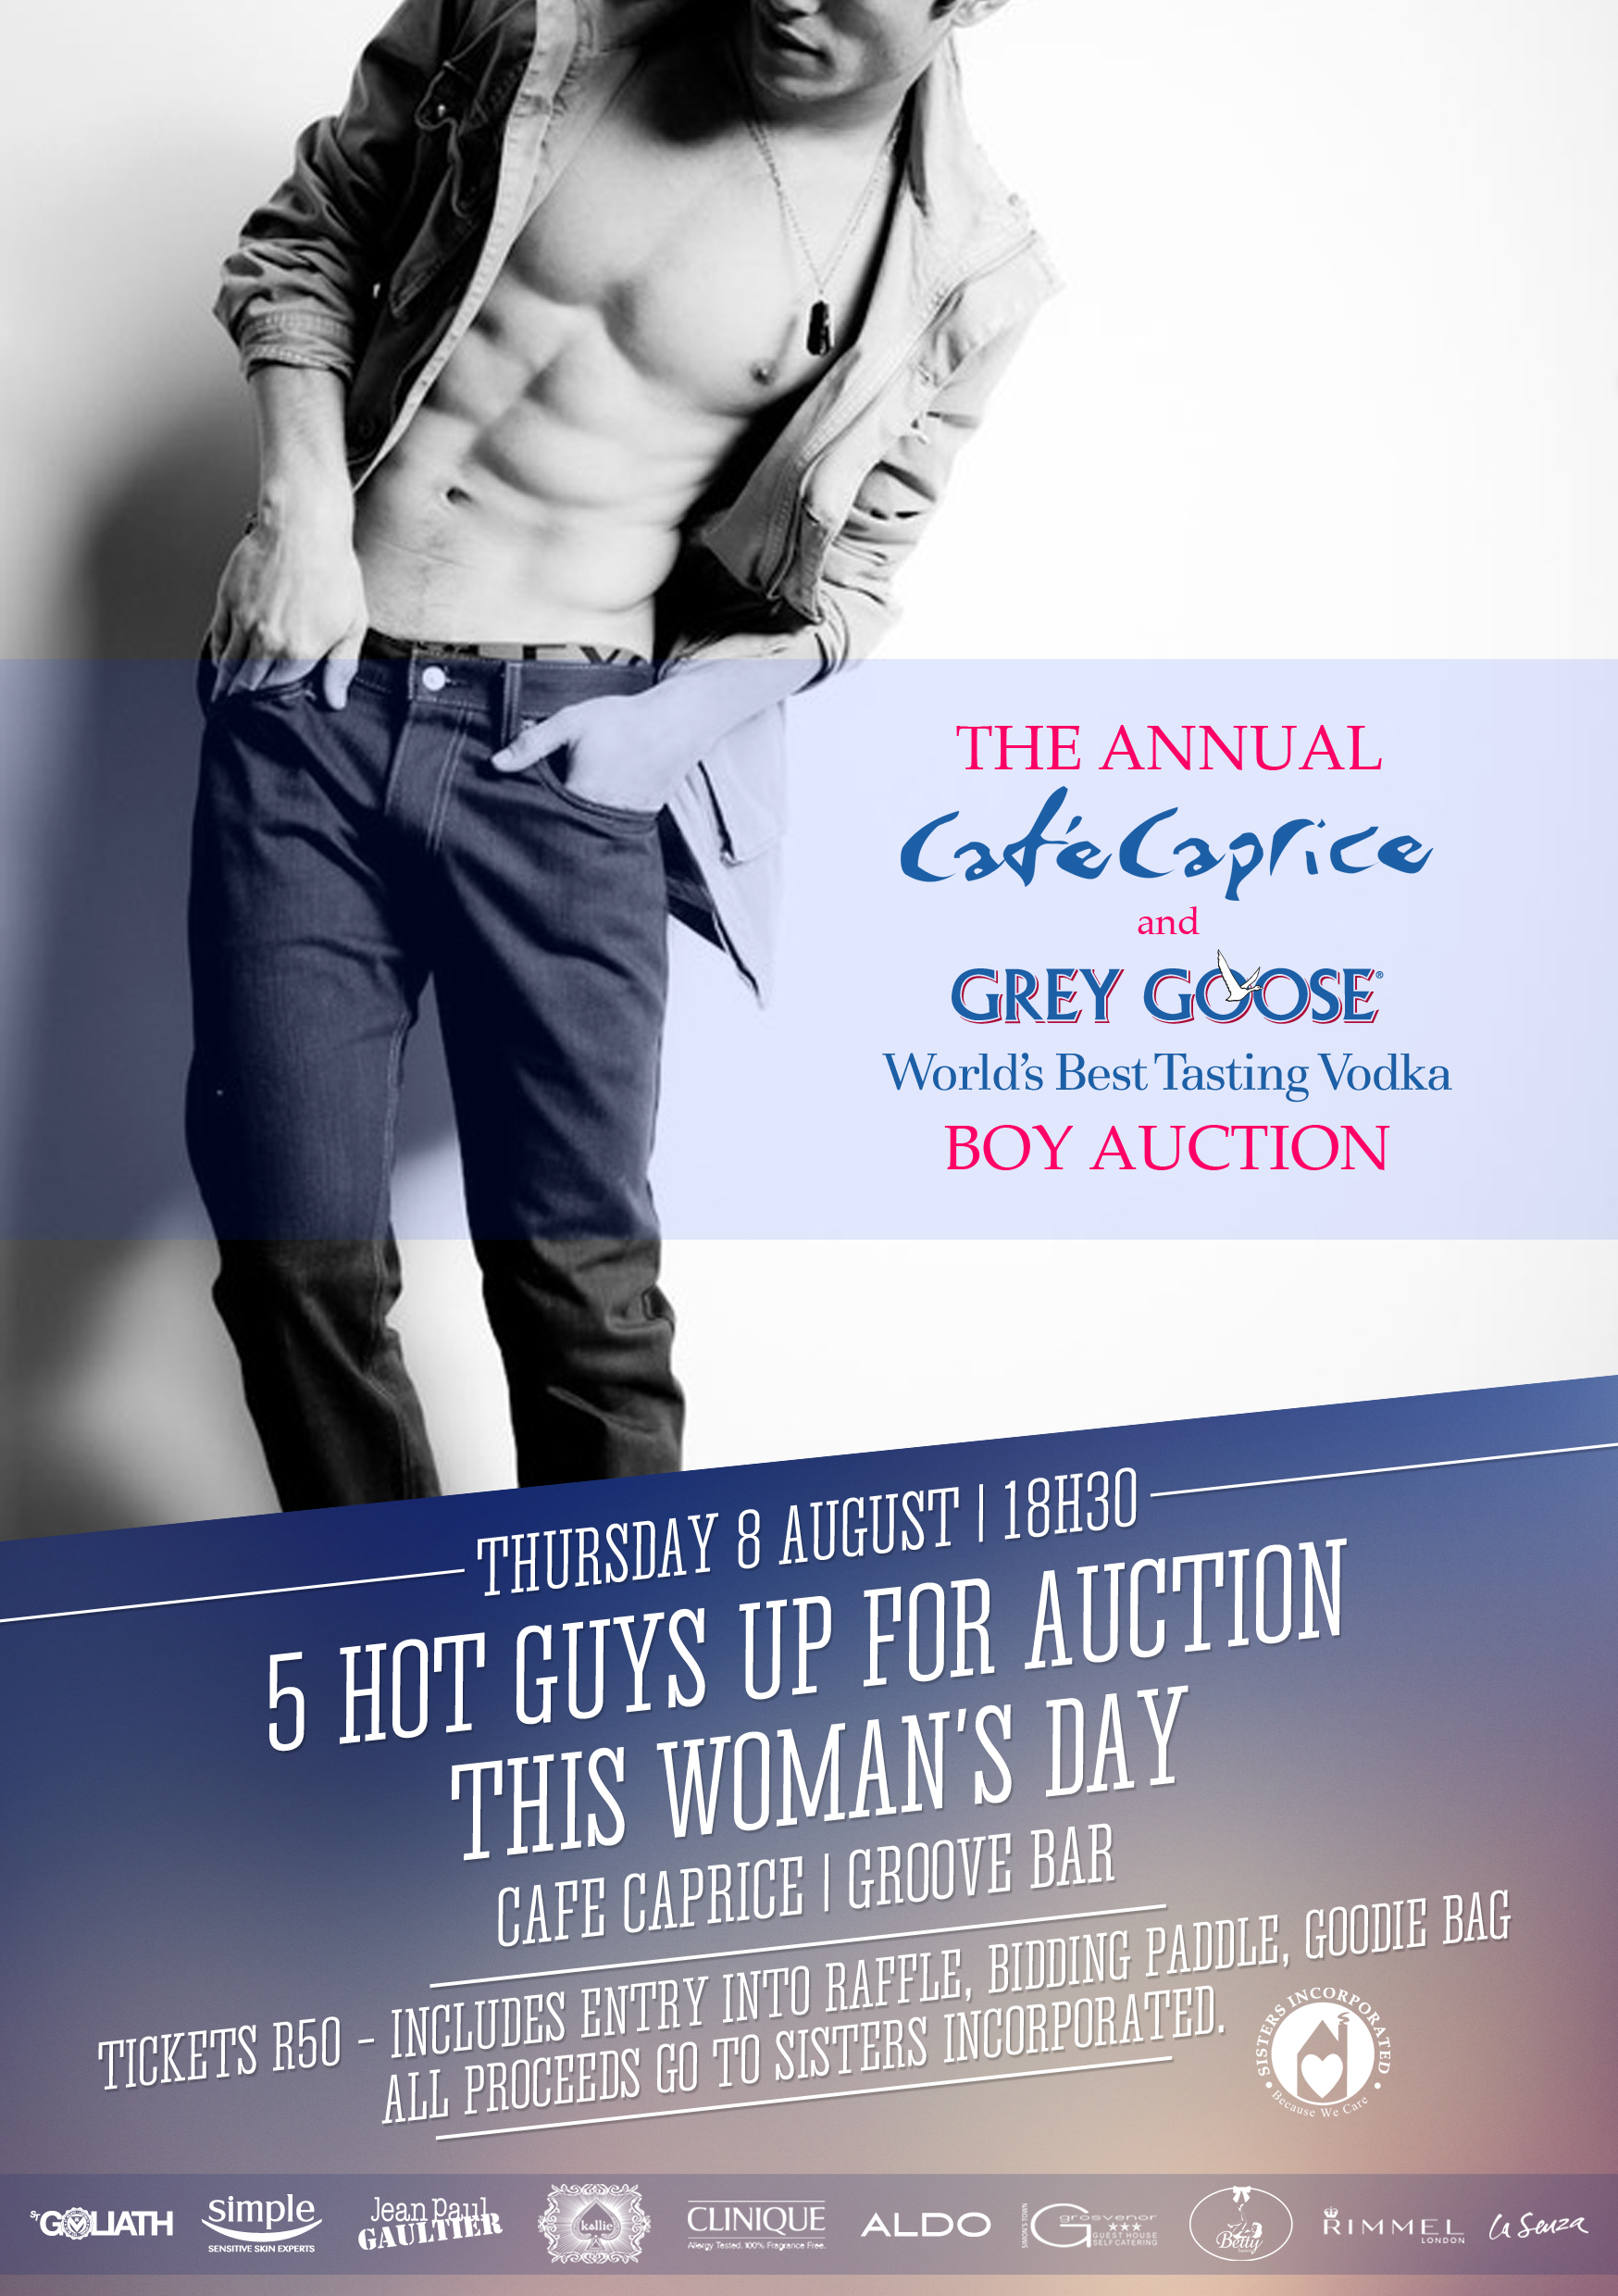 Cafe Caprice and Grey Goose Charity Boy Auction Invite